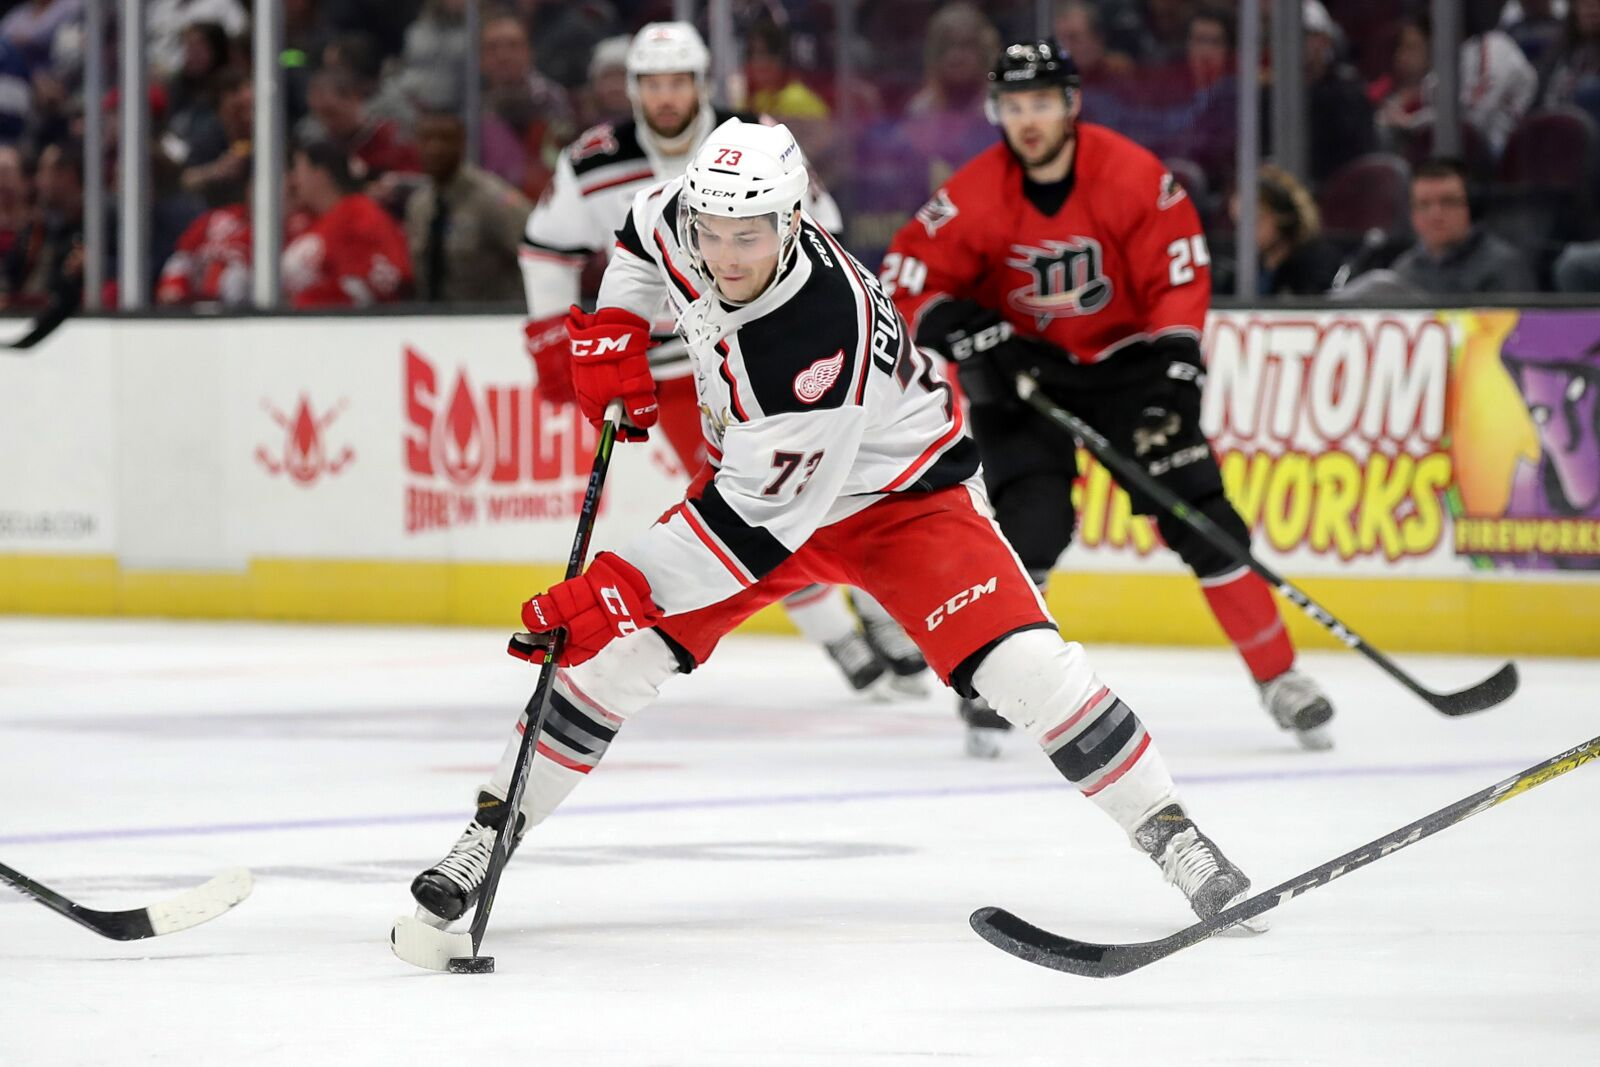 Matt Puempel will get an audition with the Detroit Red Wings